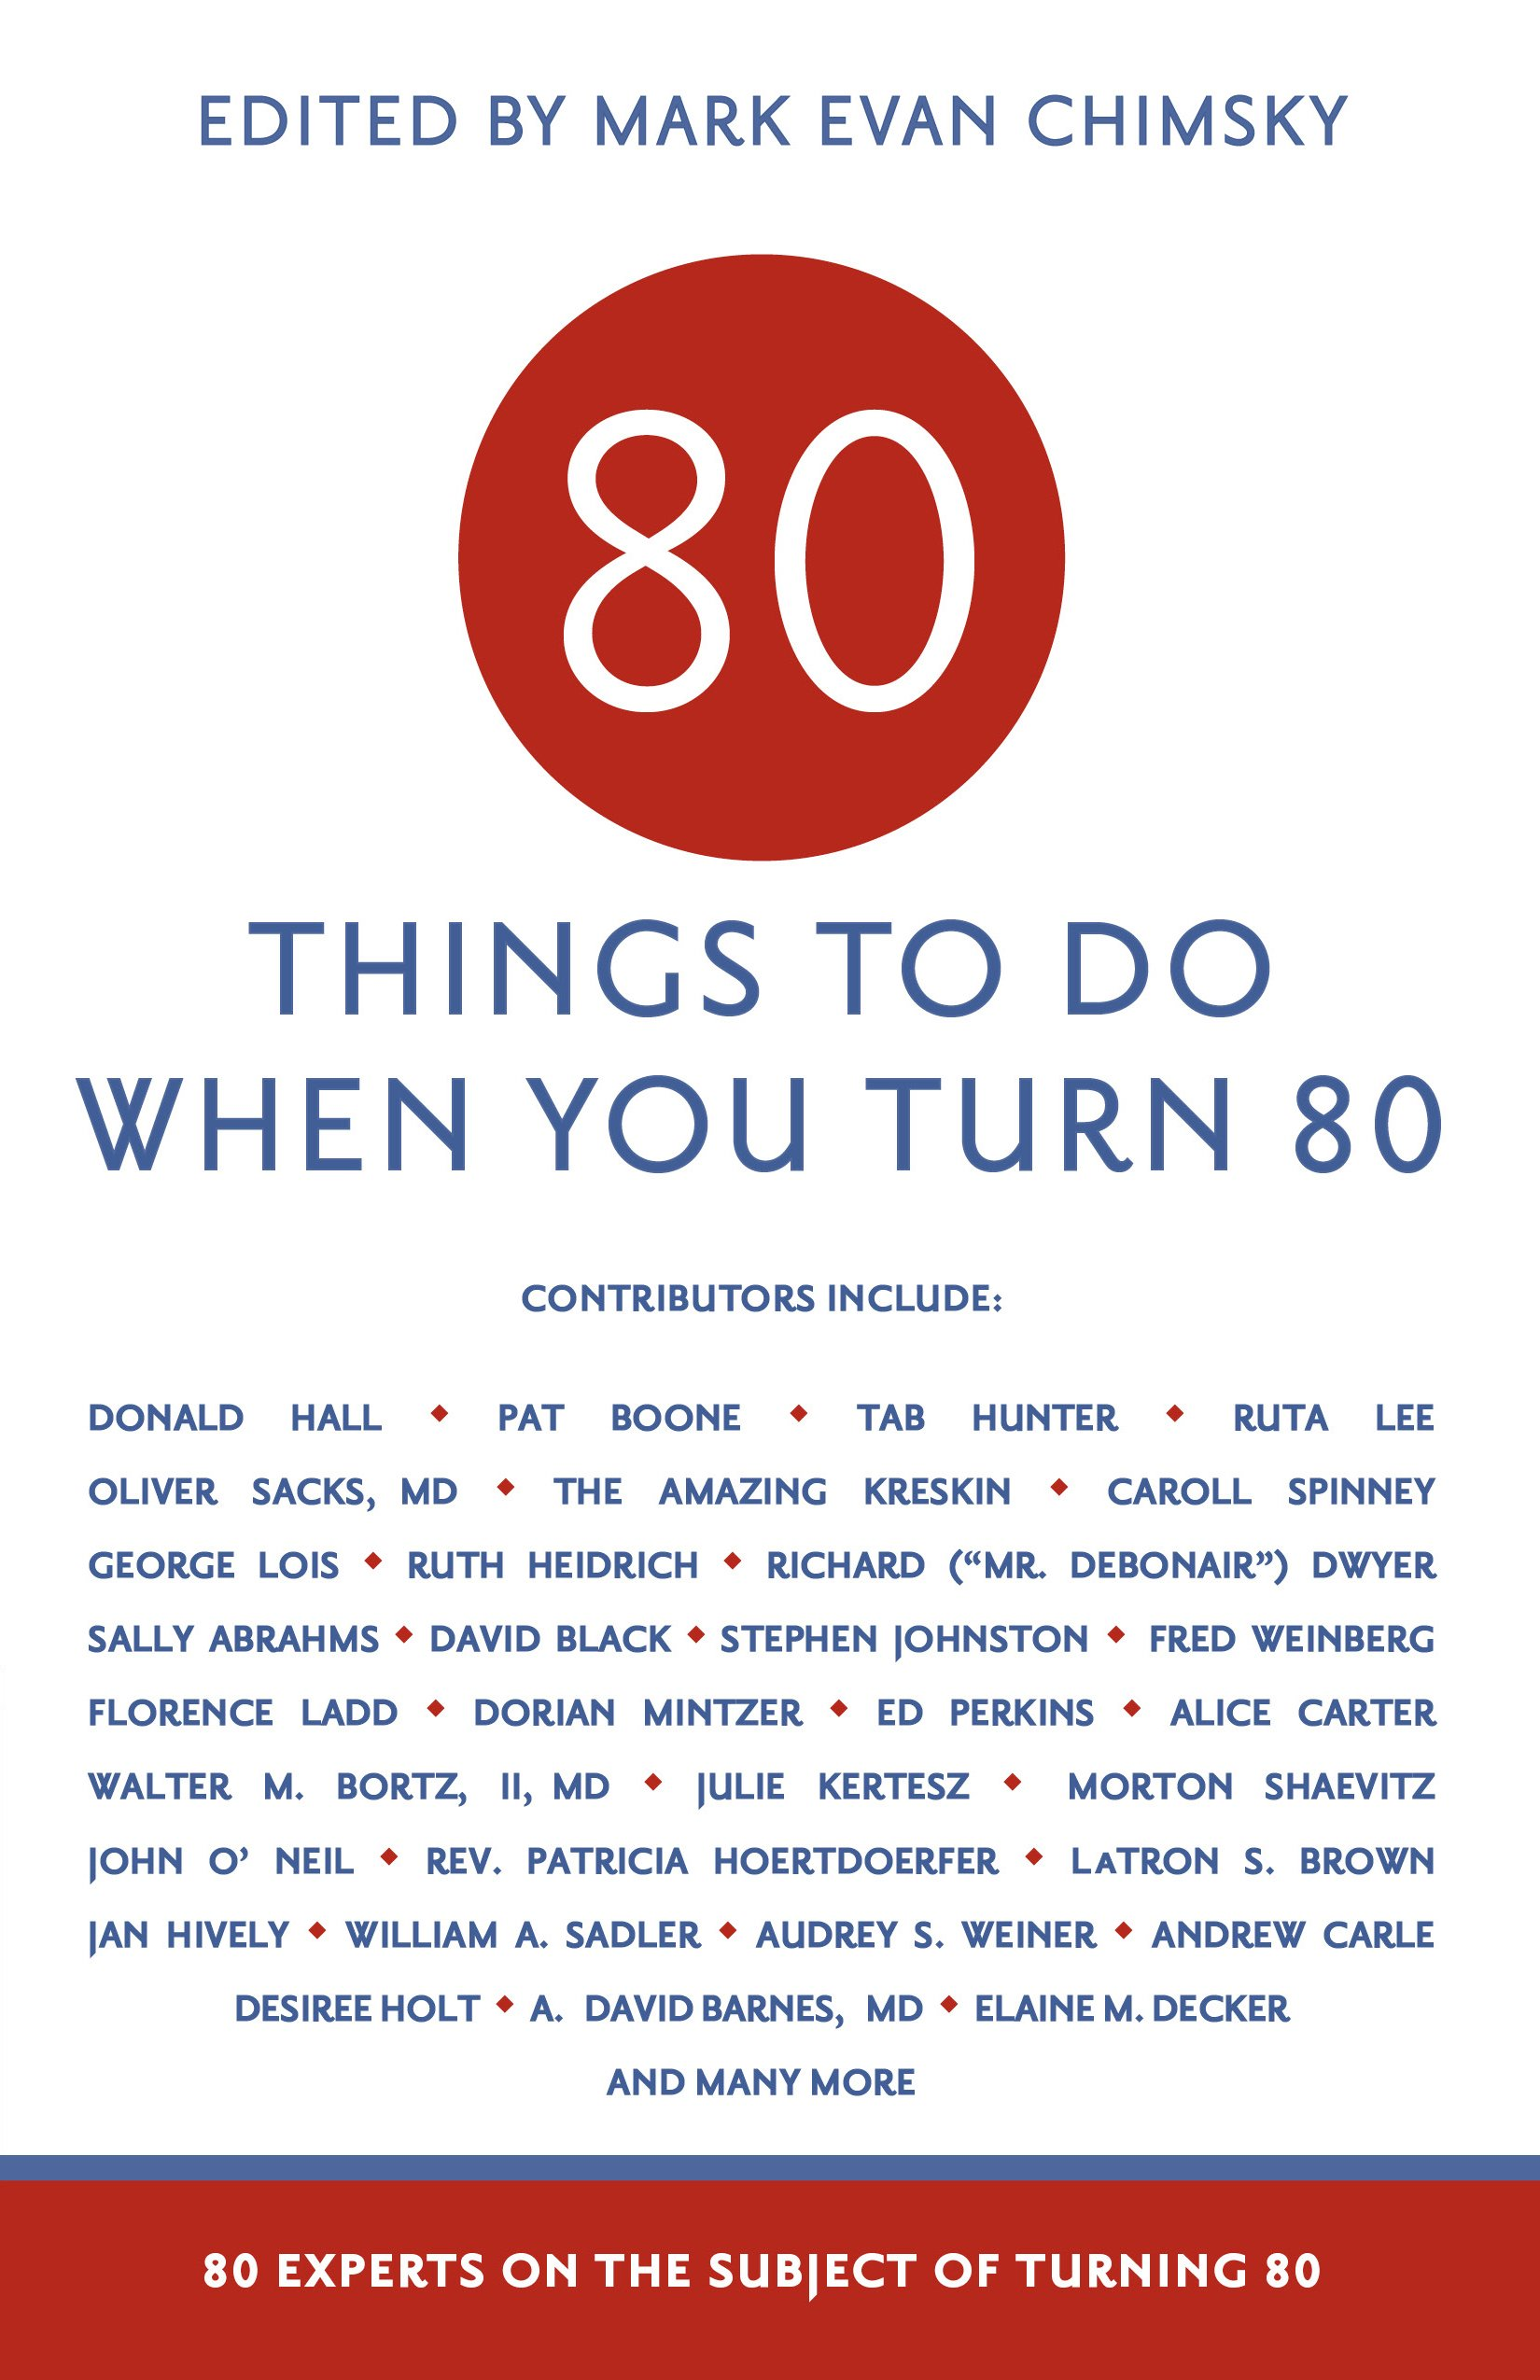 80 Things To Do When You Turn 80 Chimsky Editor Mark Evan